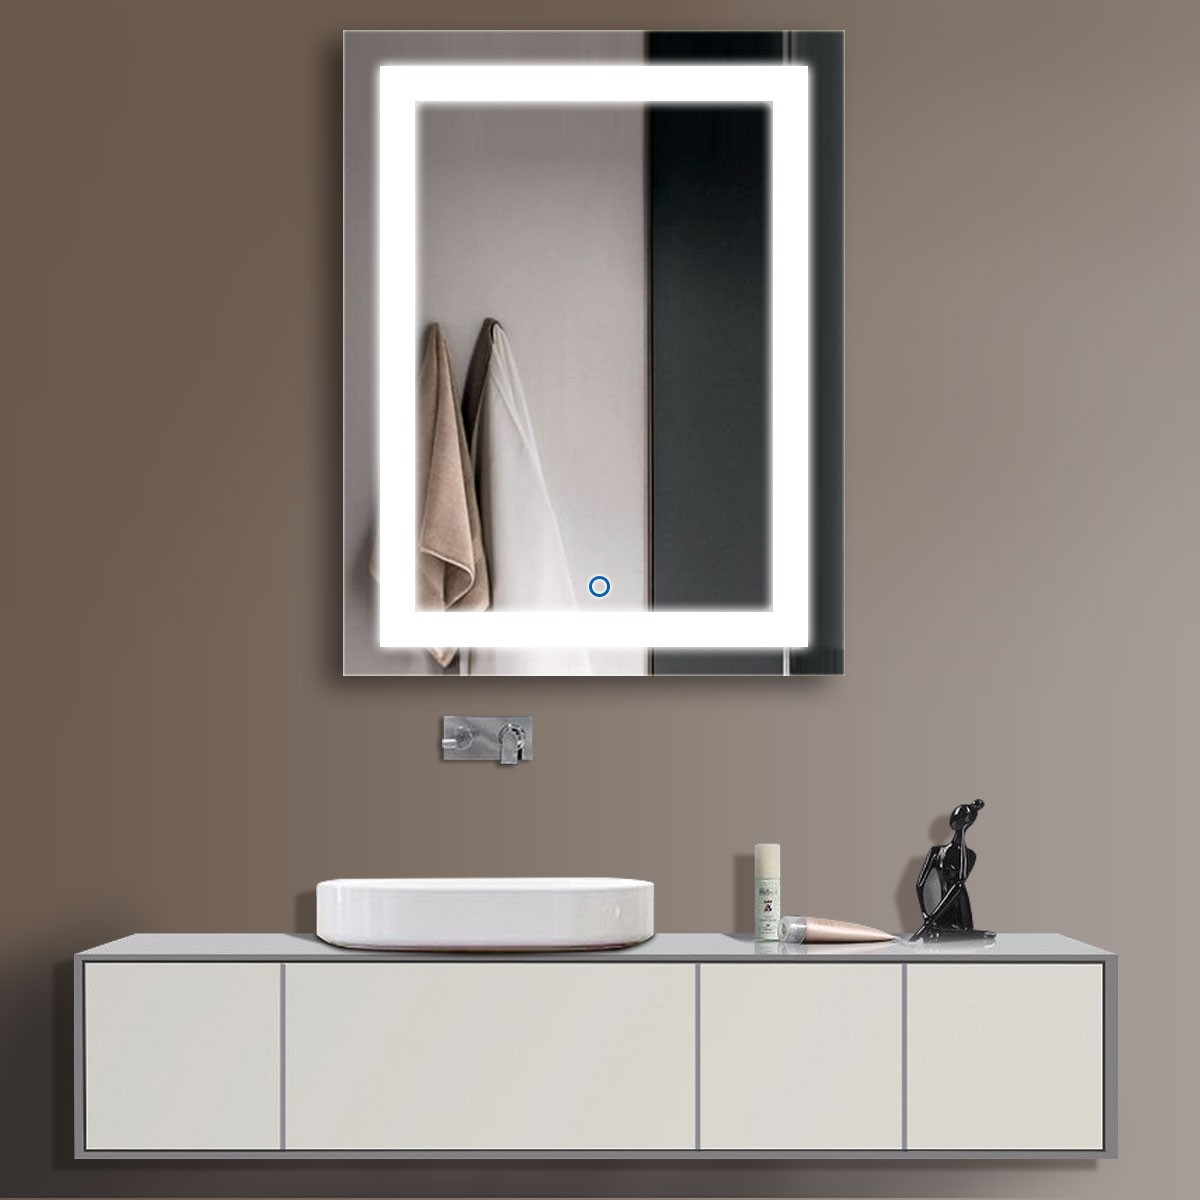 28 X 36 In Vertical Led Bathroom Silvered Mirror With